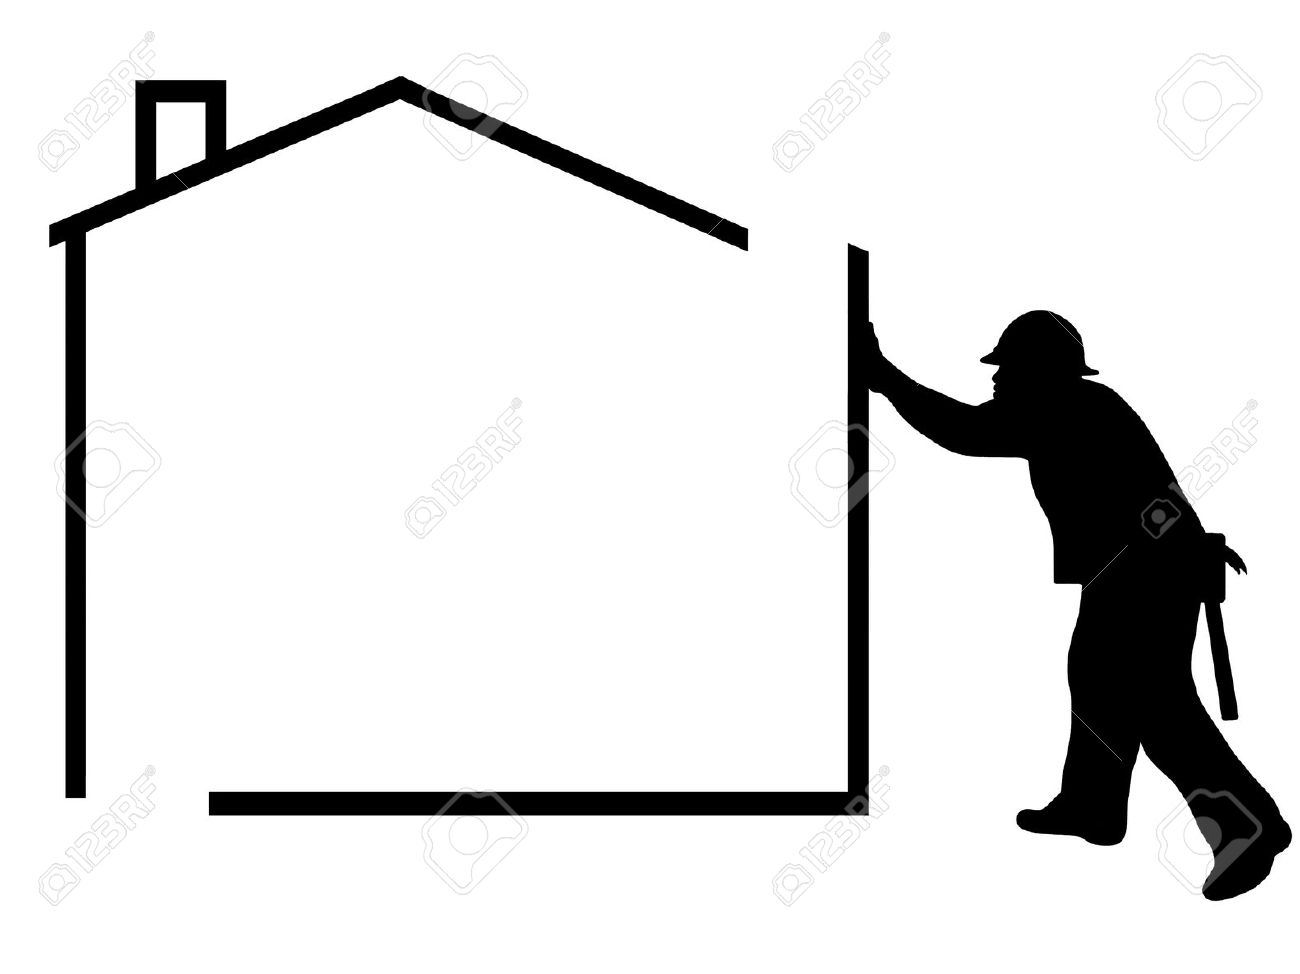 People and houses clipart.